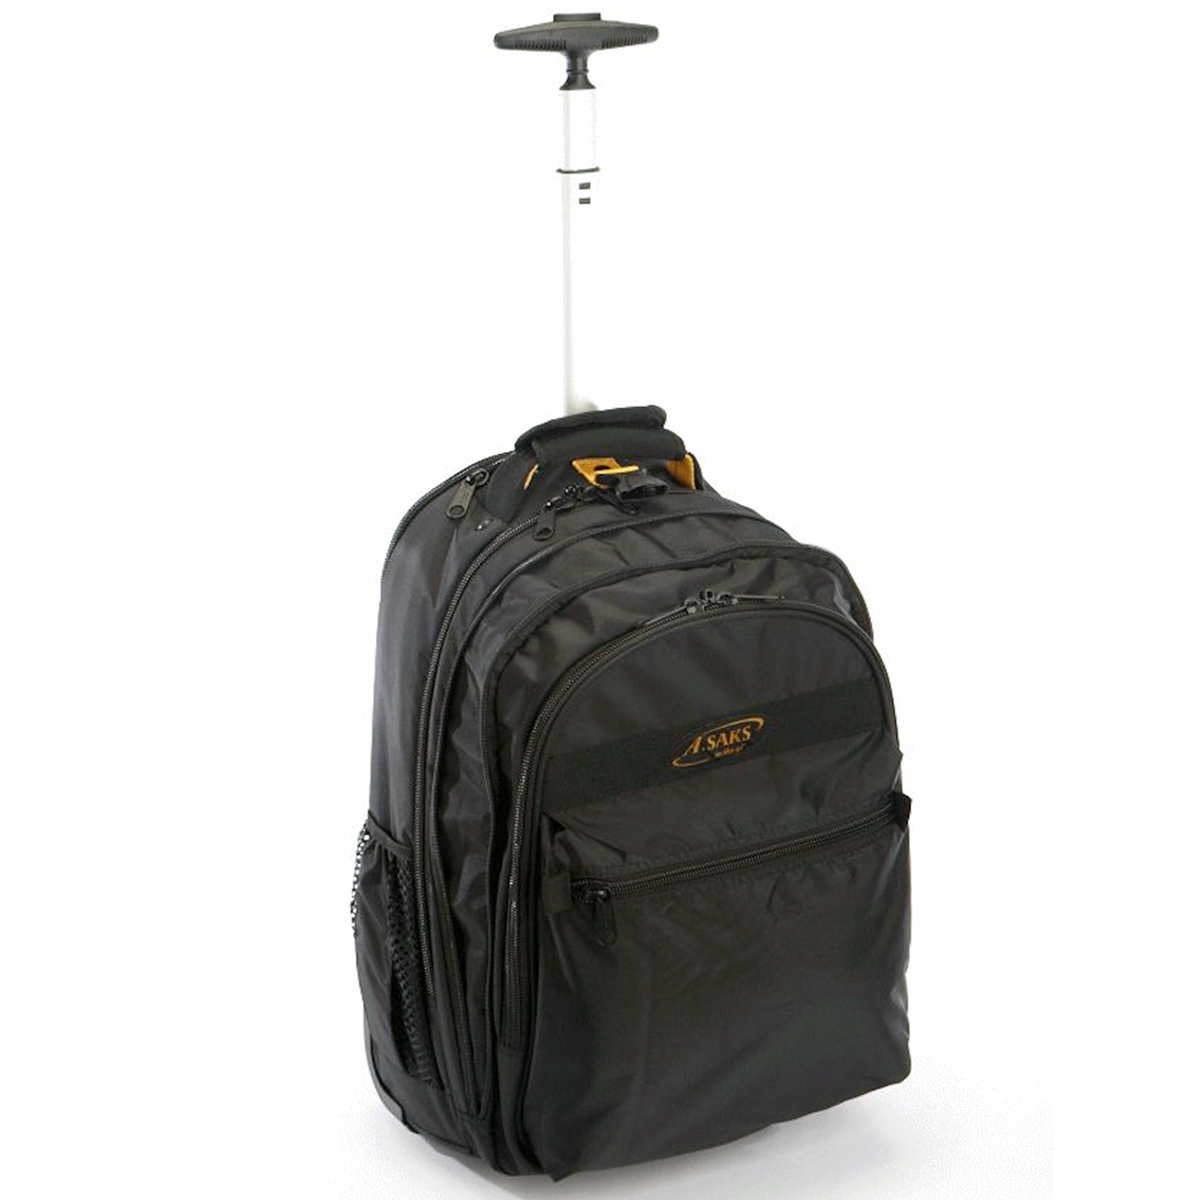 A. Saks AE-19W Deluxe Exapandable Wheeled Computer Backpack